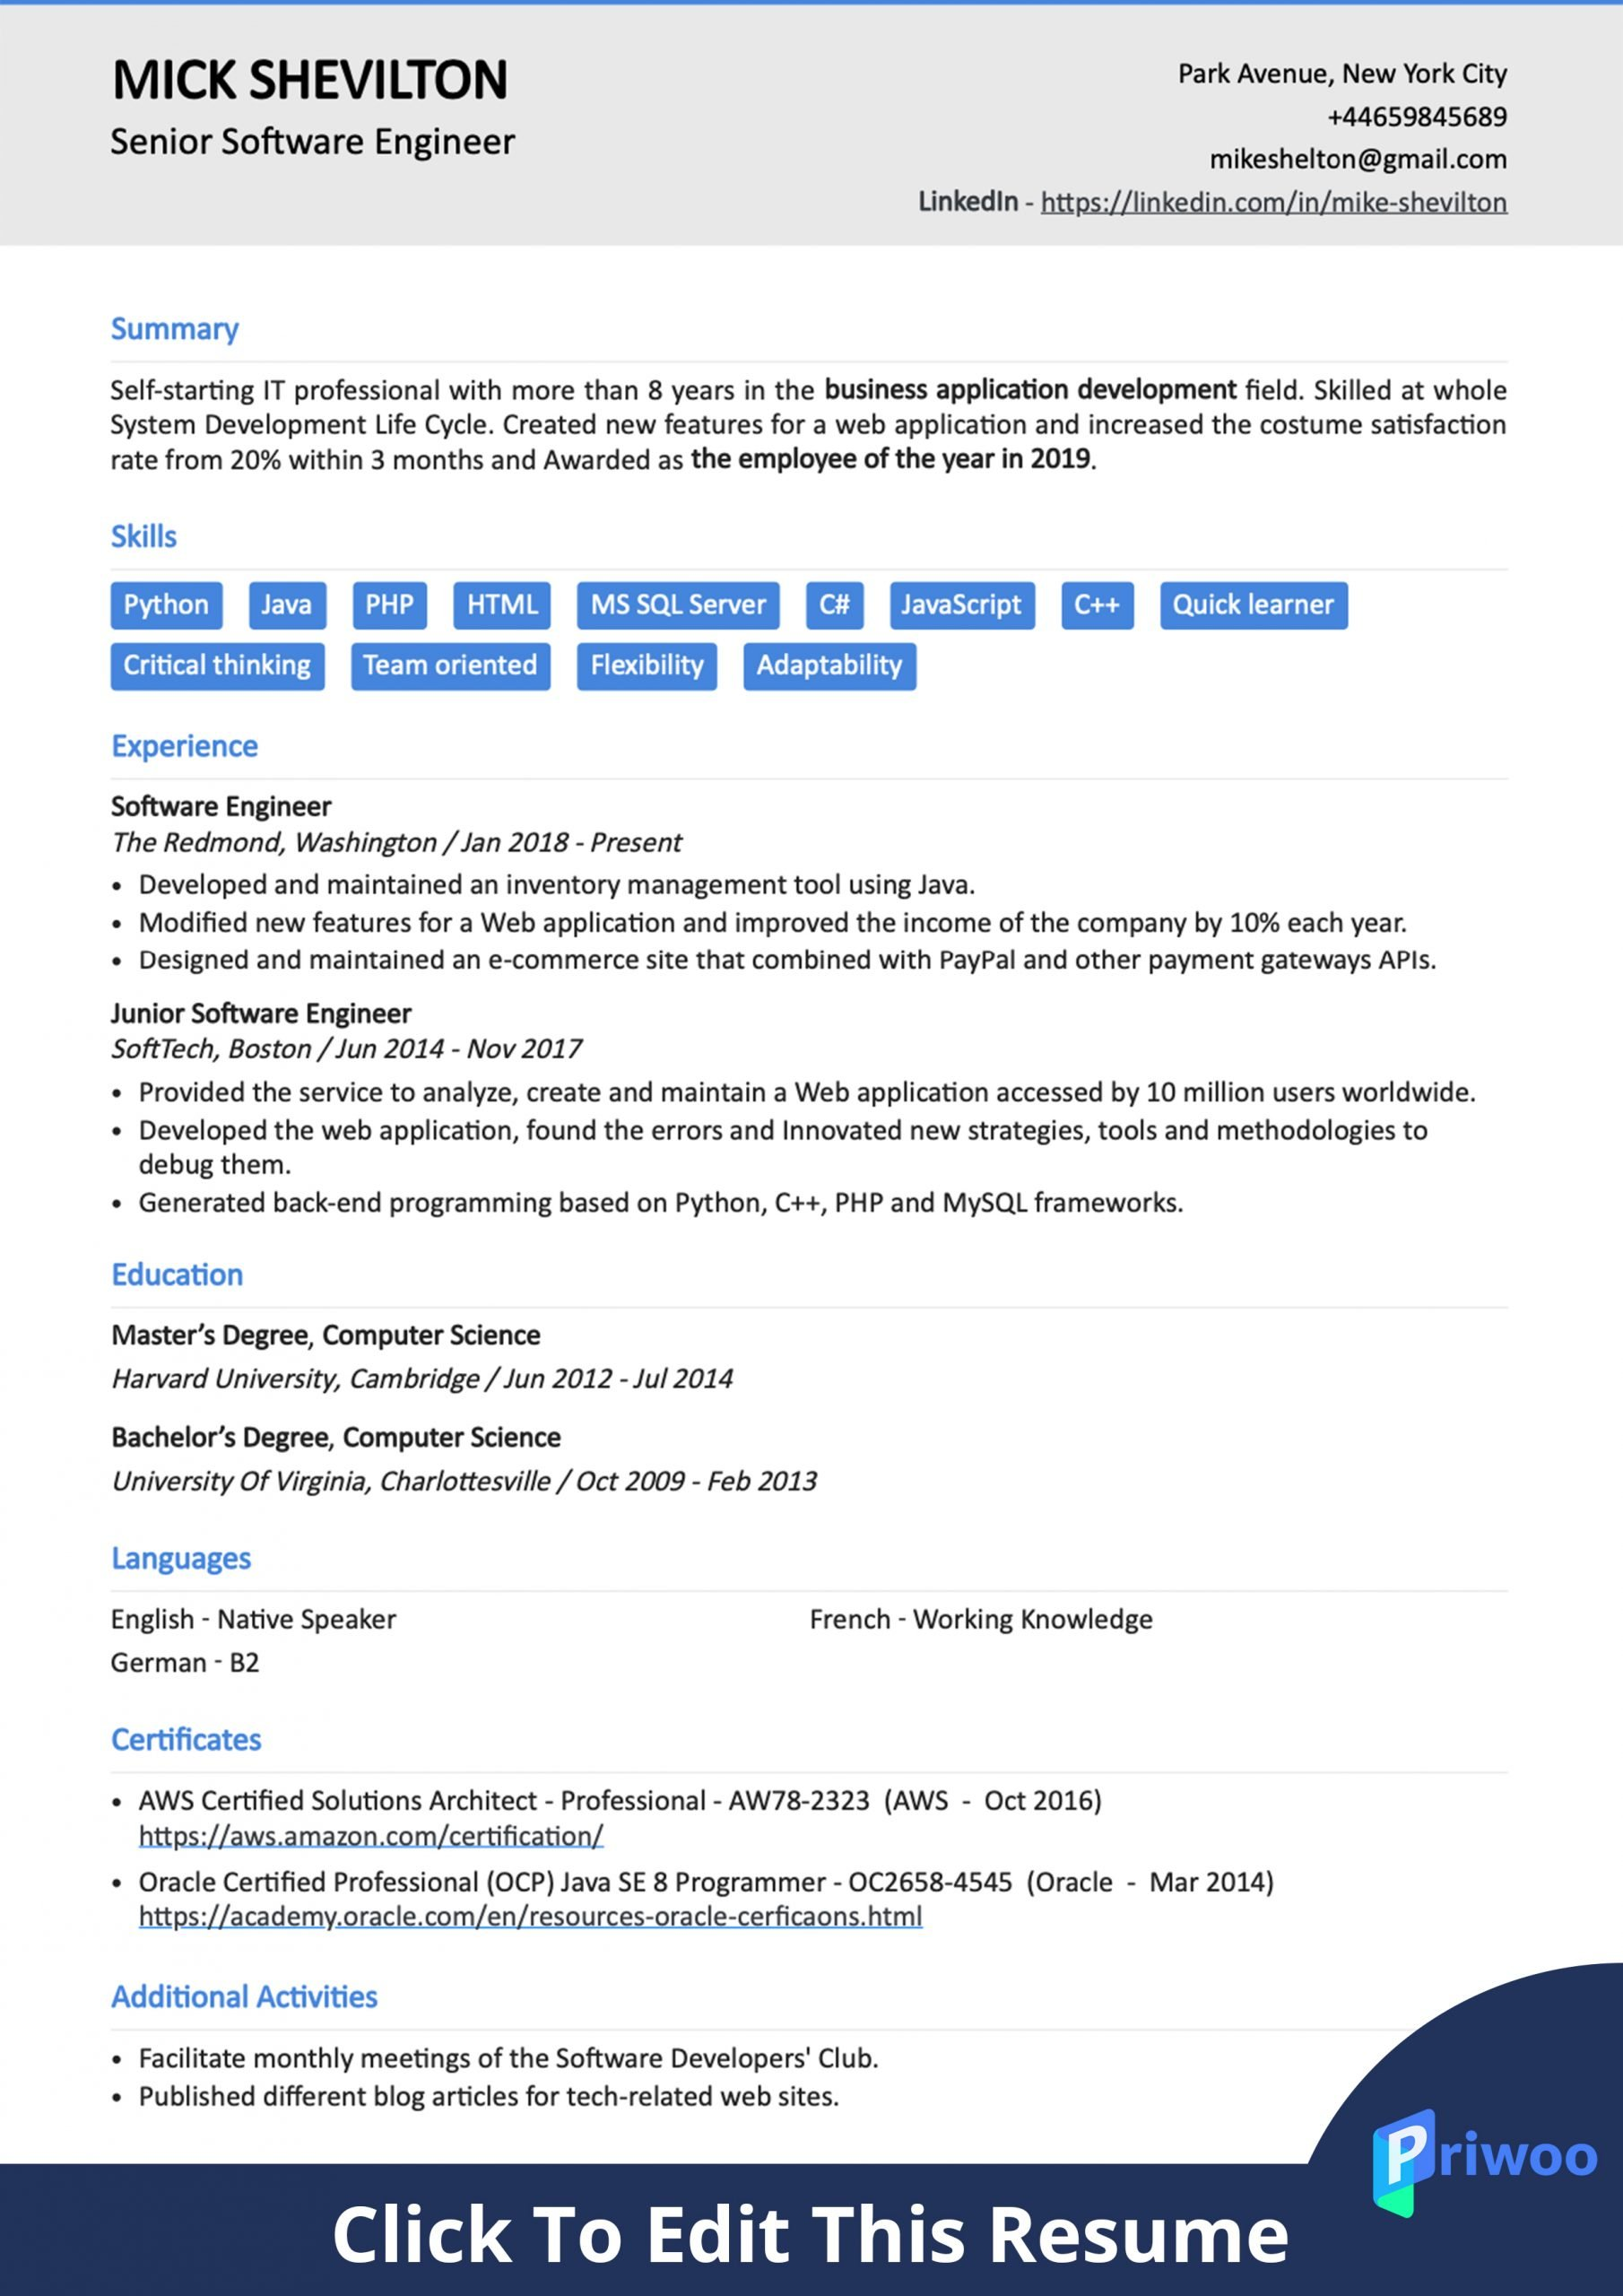 software engineer resume example best action verbs skills priwoo great scaled fresher Resume Great Software Engineer Resume